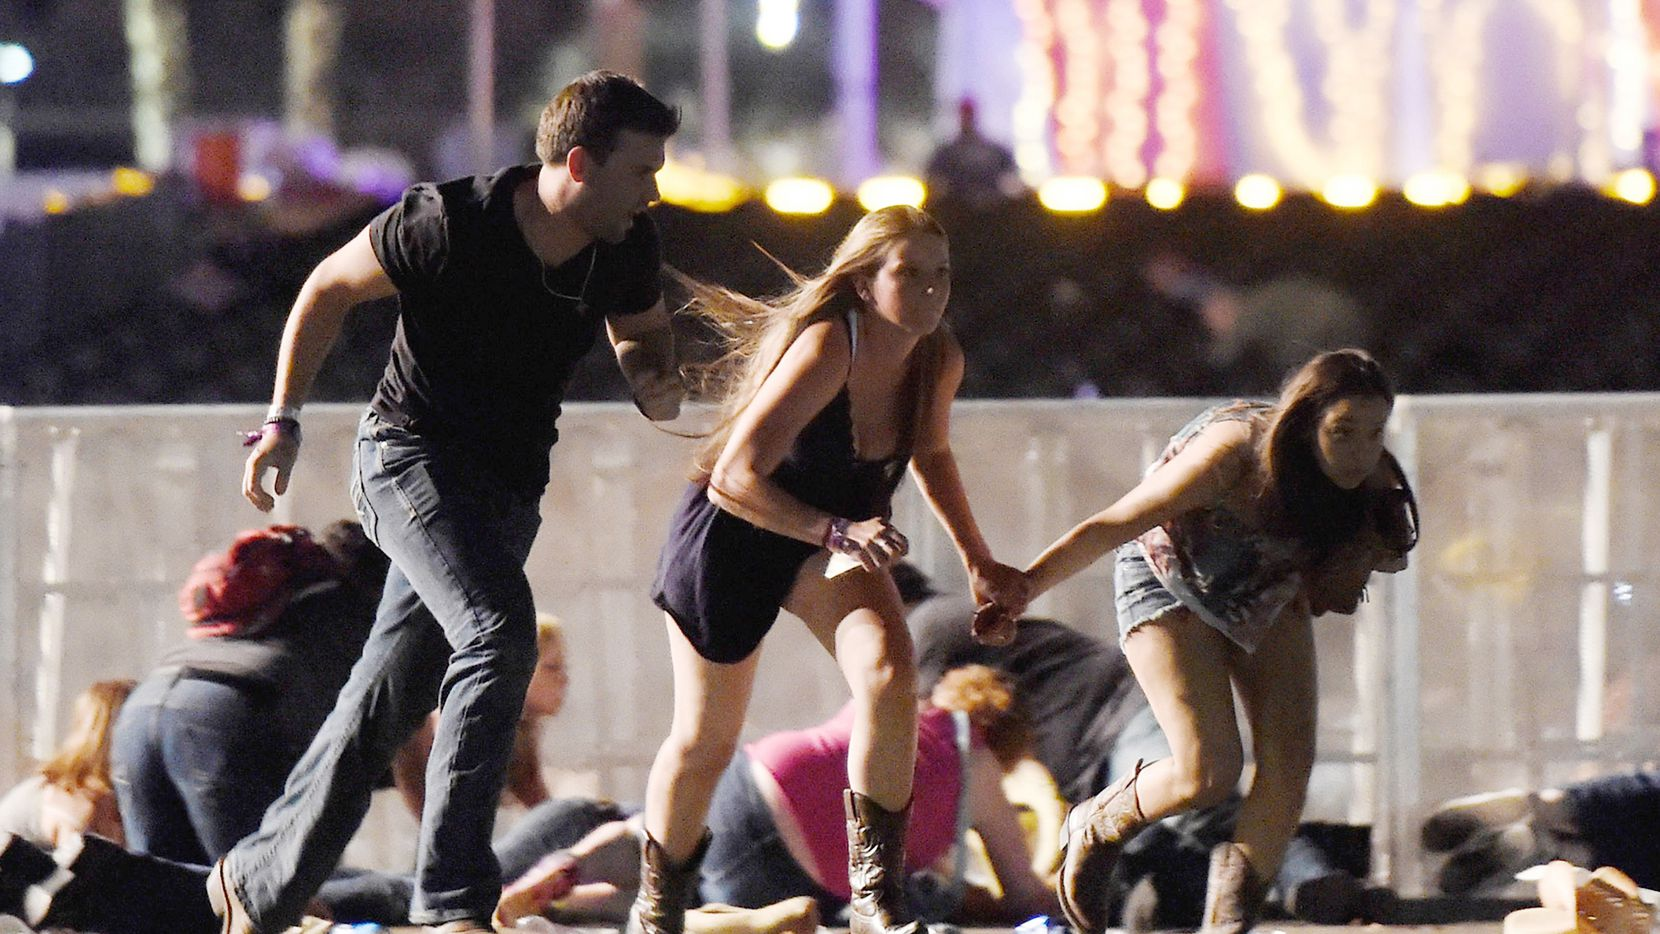 People run from the Route 91 Harvest country music festival after apparent gun fire was heard on October 1, 2017 in Las Vegas, Nevada. A gunman has opened fire on a music festival in Las Vegas, leaving at least 58 people dead and more than 500 injured. Police have confirmed that one suspect has been shot.